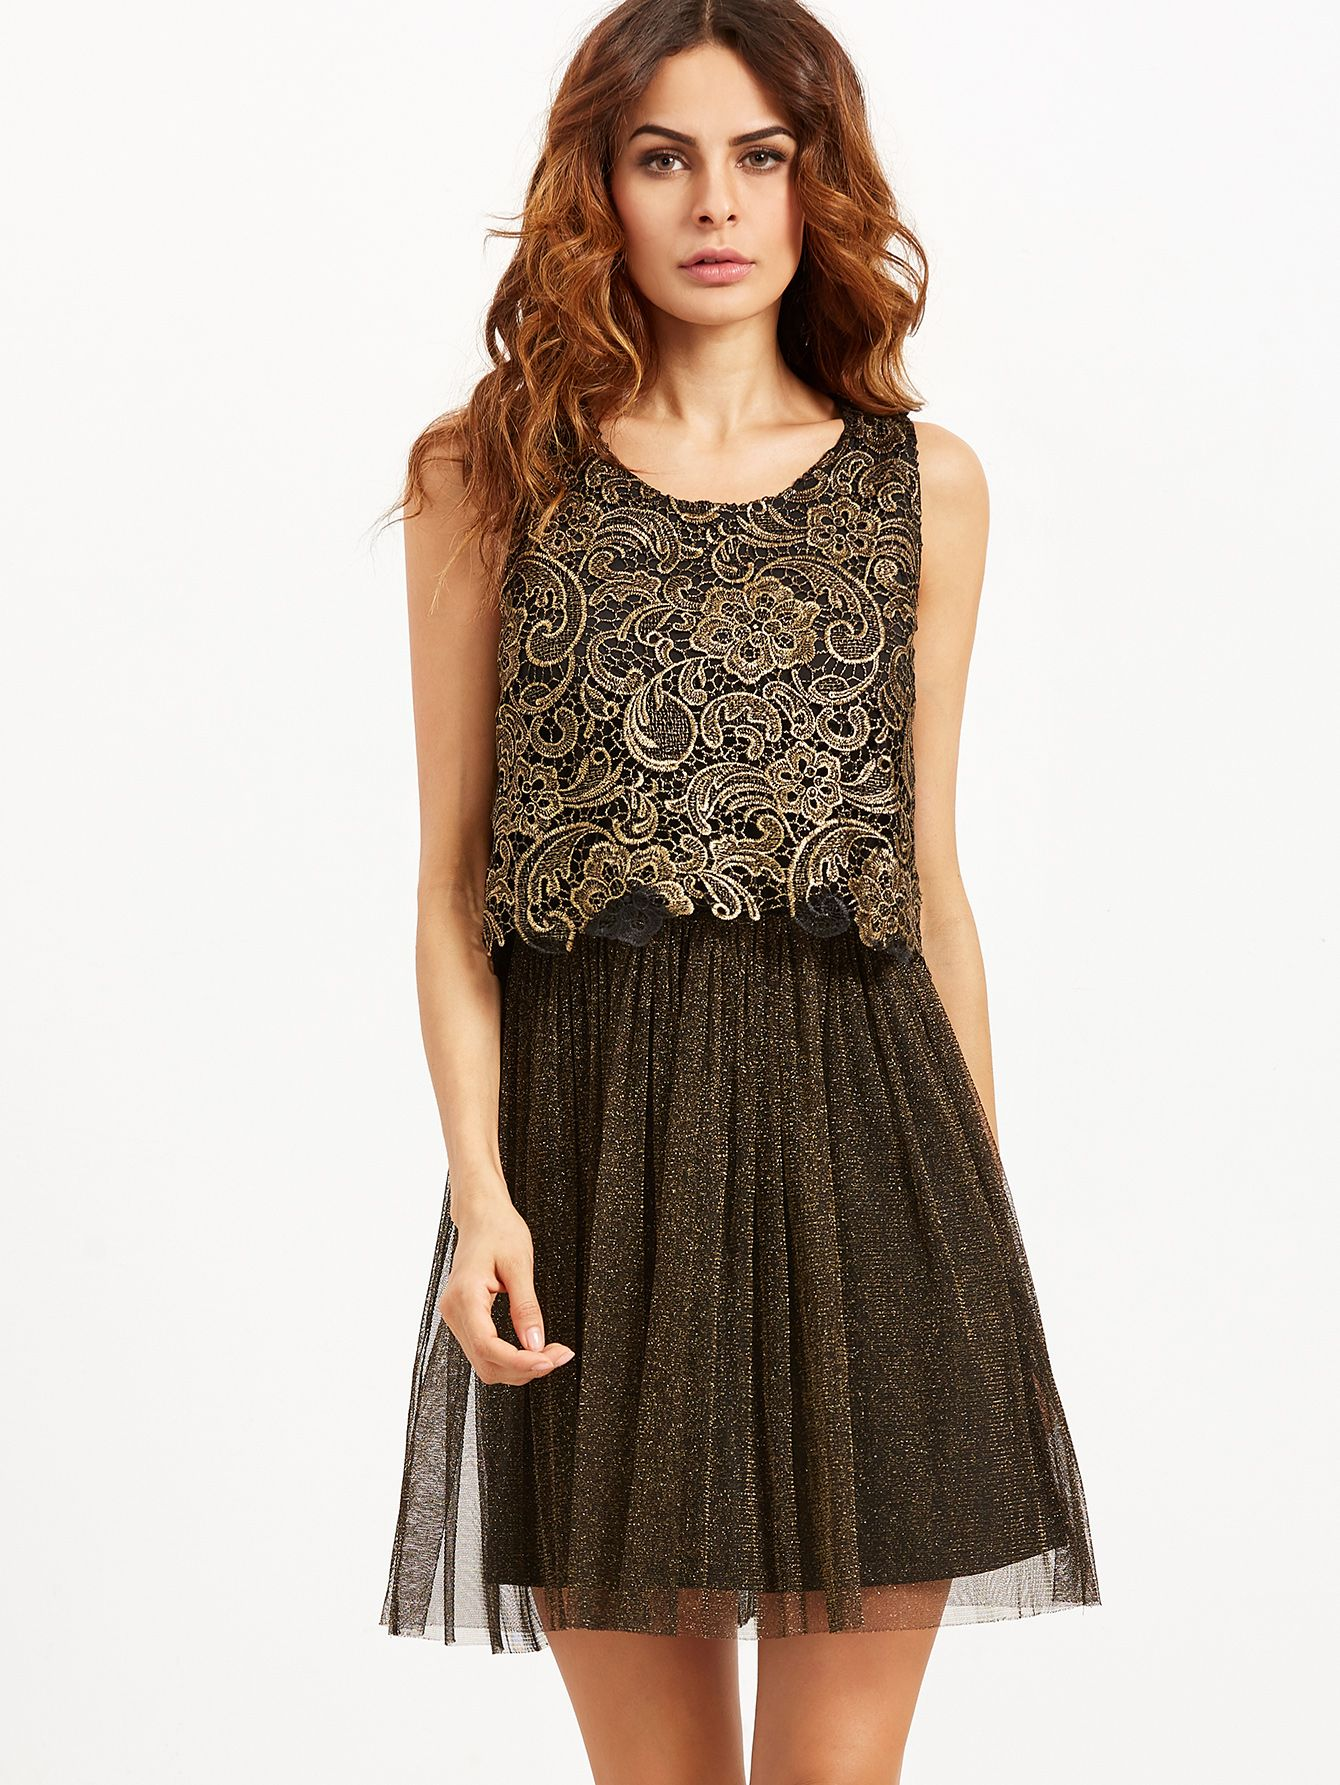 Shein black embroidered lace top combo sparkle dress shops lace